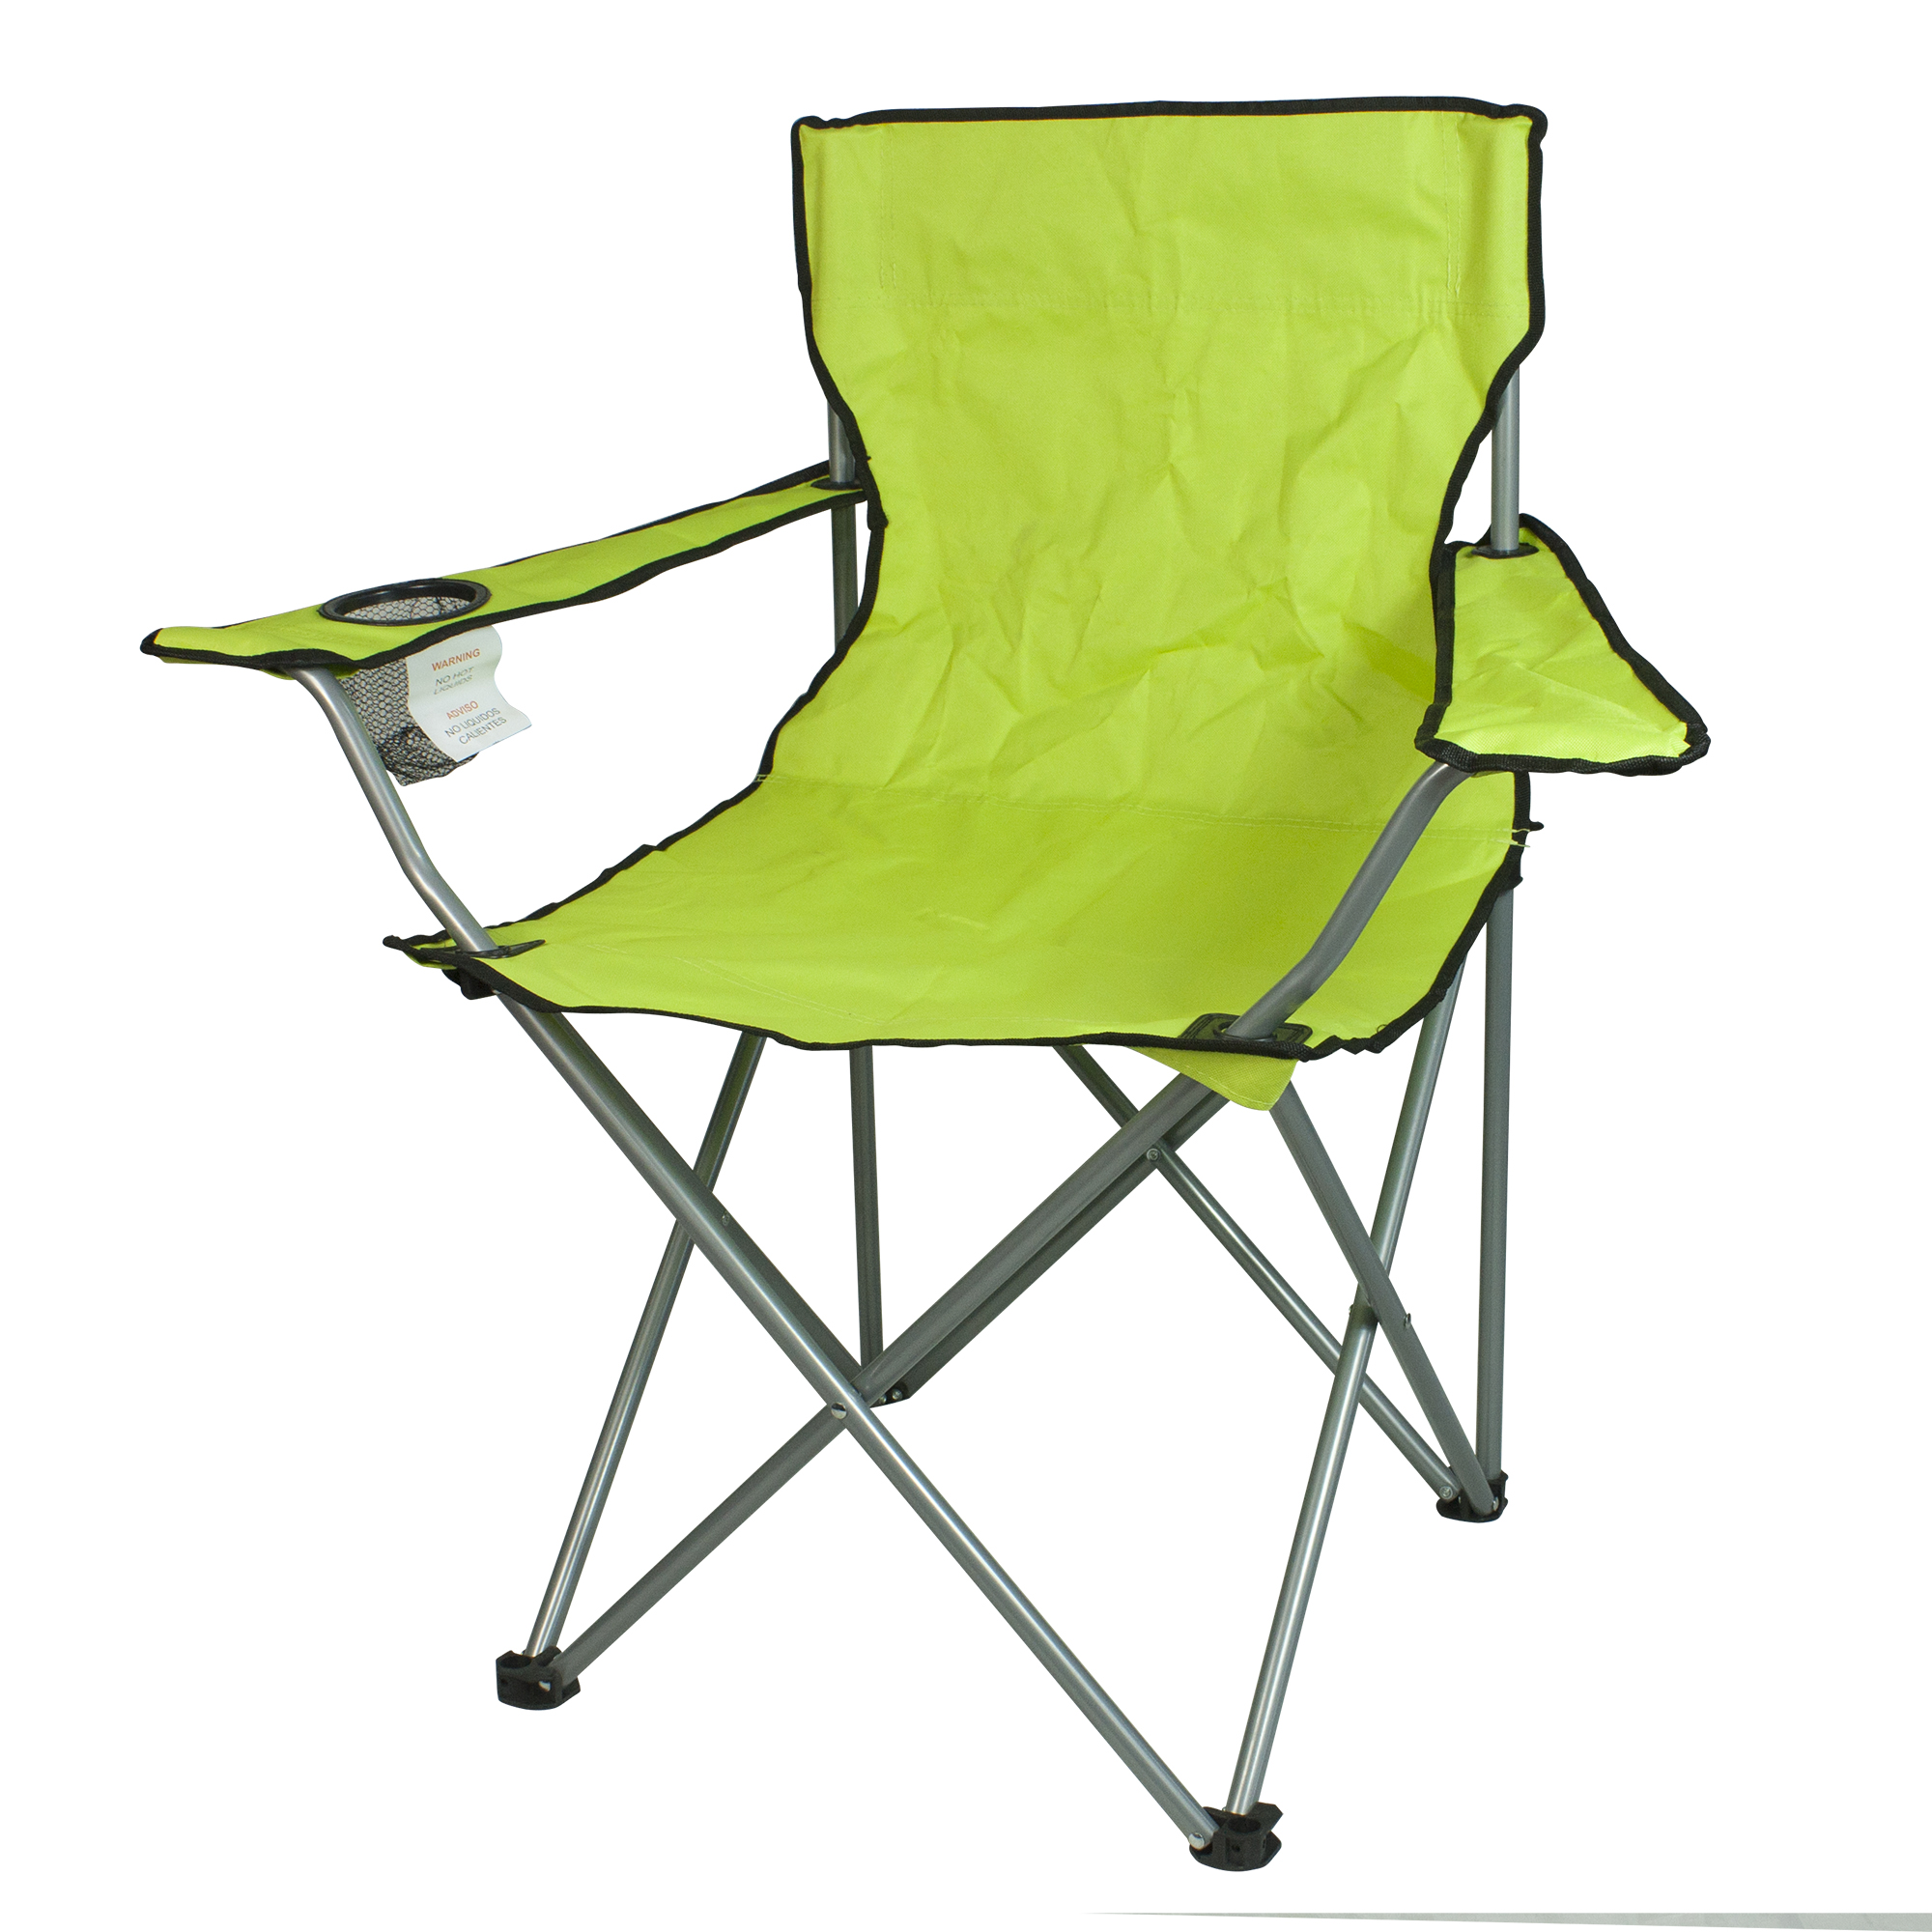 northwest territory chairs folding chair replacement parts camping tables kmart lightweight sports bright lime